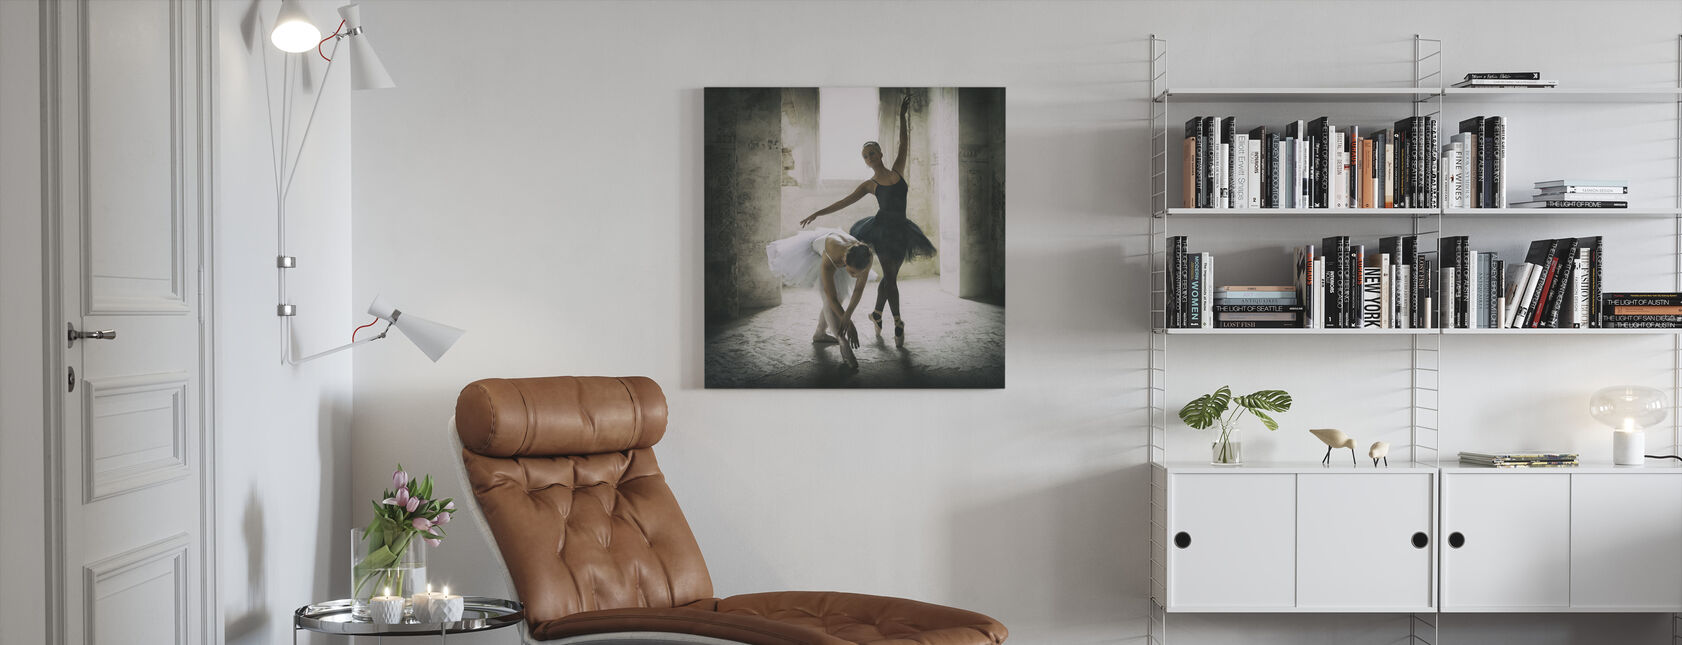 The Subtle Bow - Canvas print - Living Room